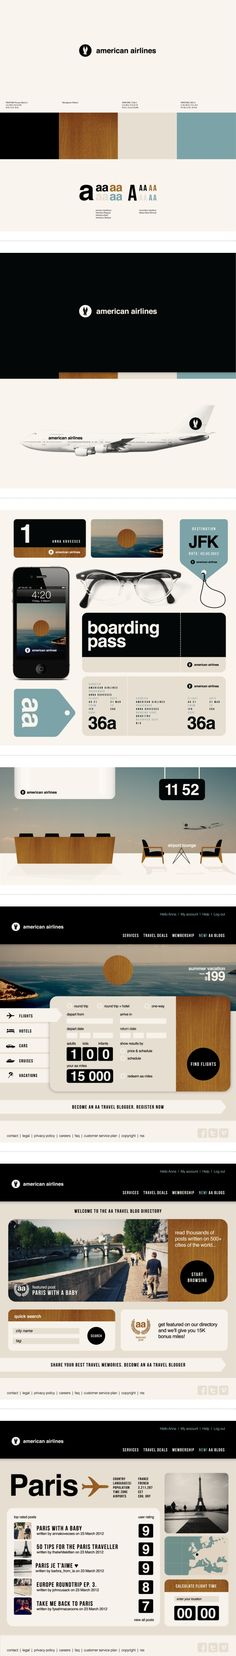 American Airlines Branding and Web Design